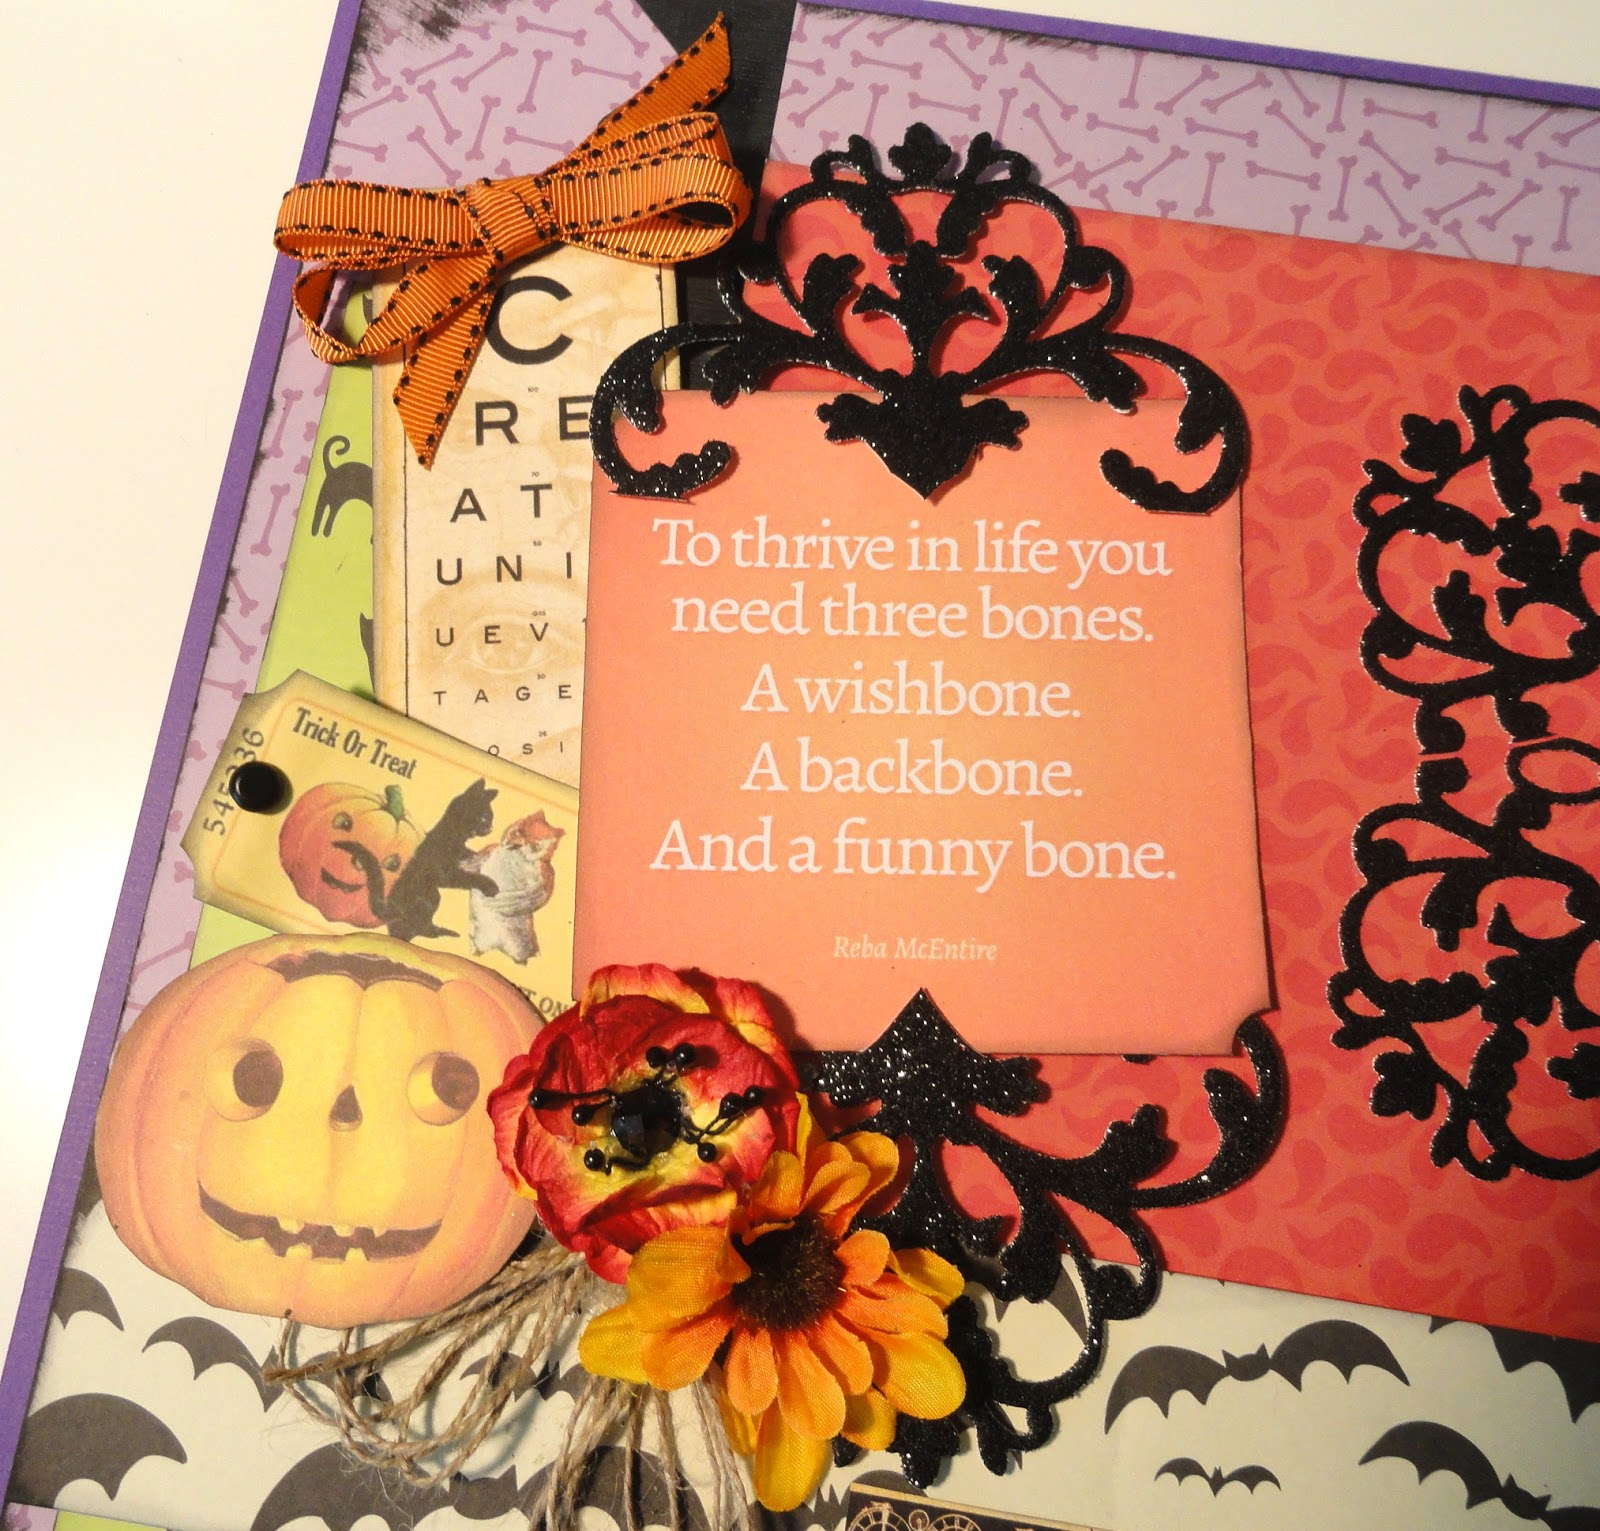 Scrapbook ideas no pictures - Wanted To Share Just A Few Halloween Inspired Scrapbook Layouts I Made Last Weekend I Say Halloween Inspired Because There Will Be No Trick Or Treating